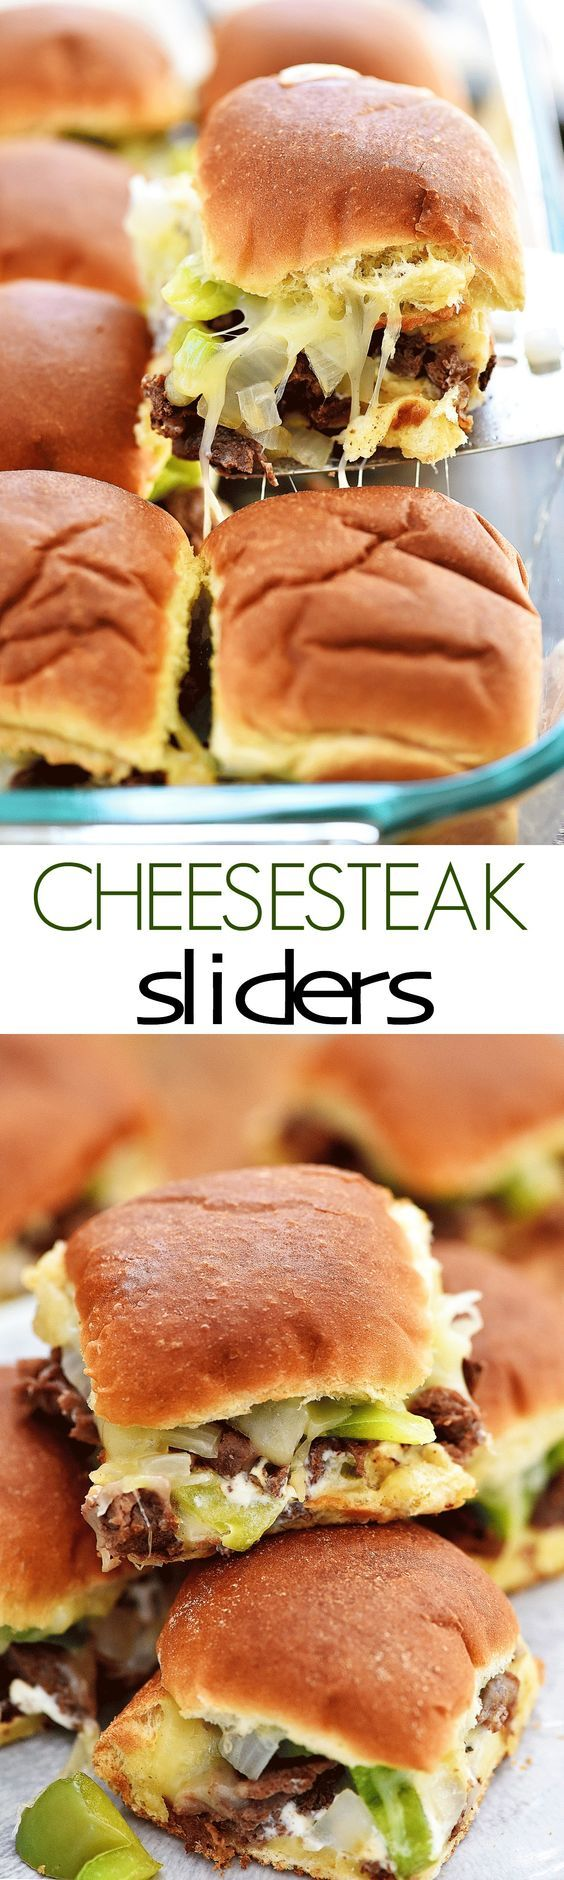 Mini slider sandwiches loaded with steak, cheese, peppers and onion!